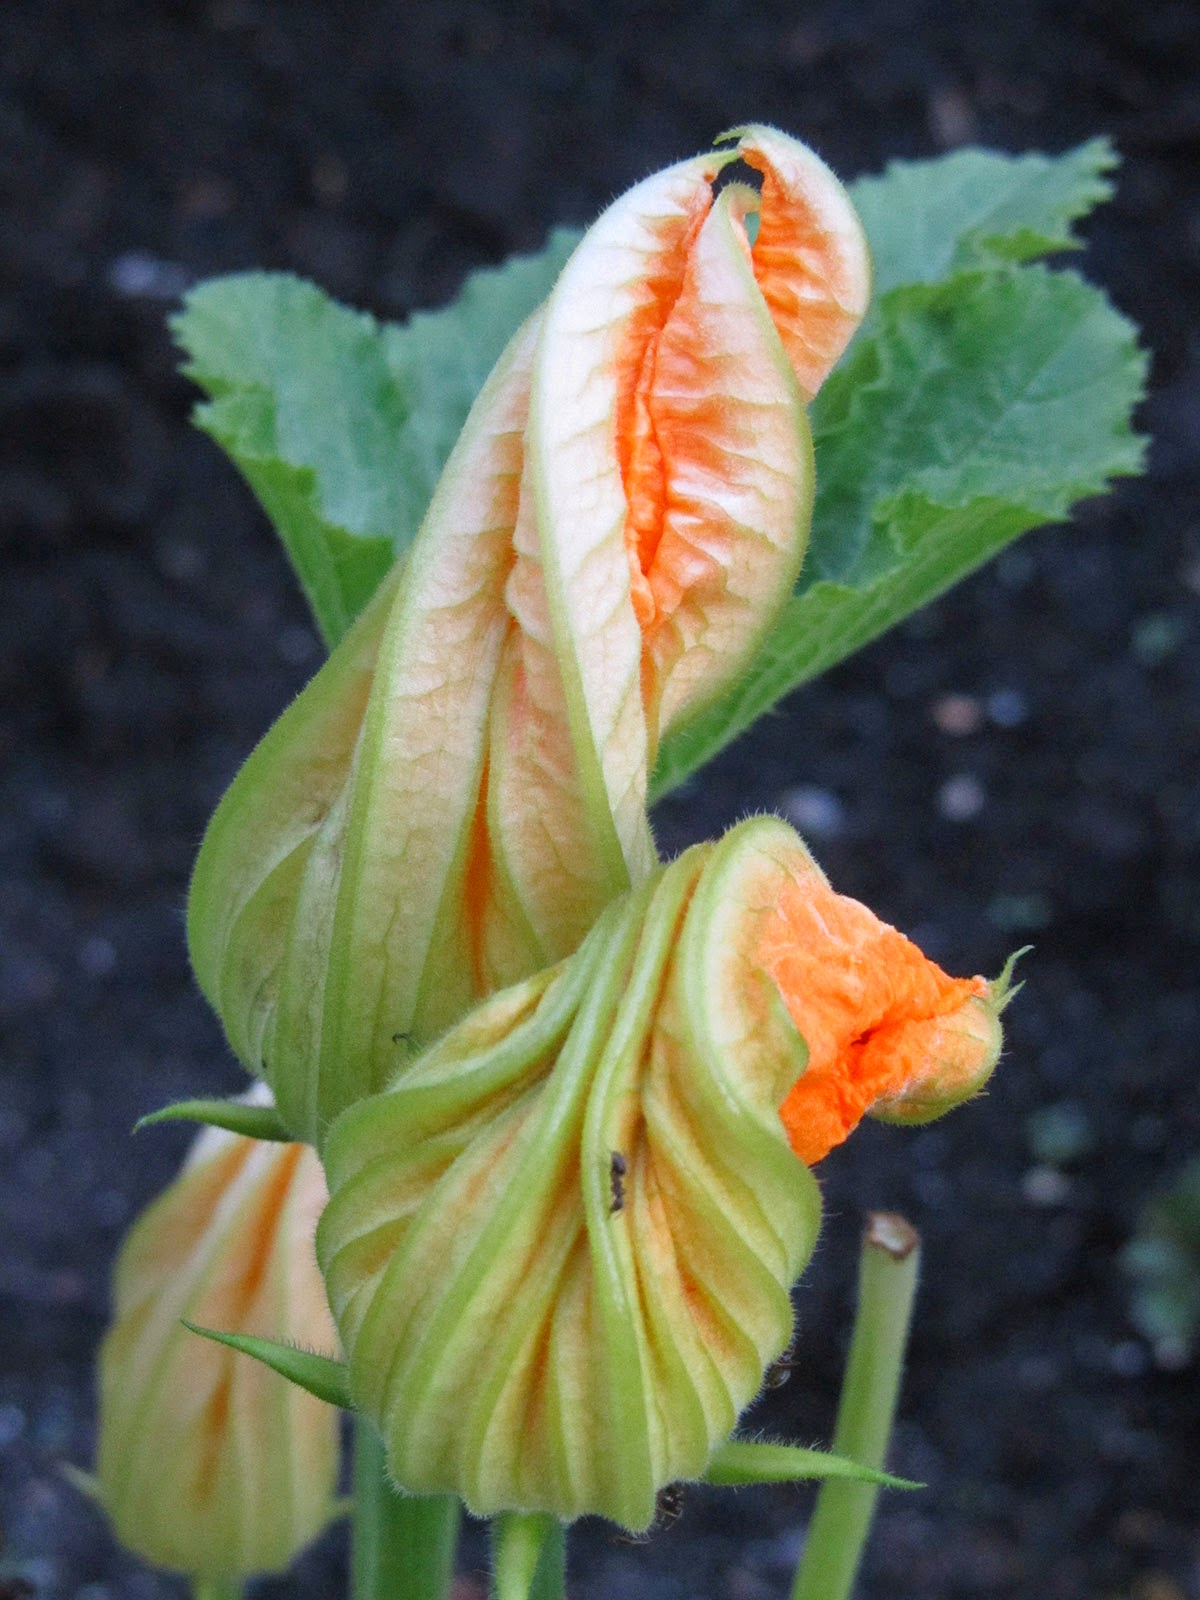 apricot coloured zucchini flower